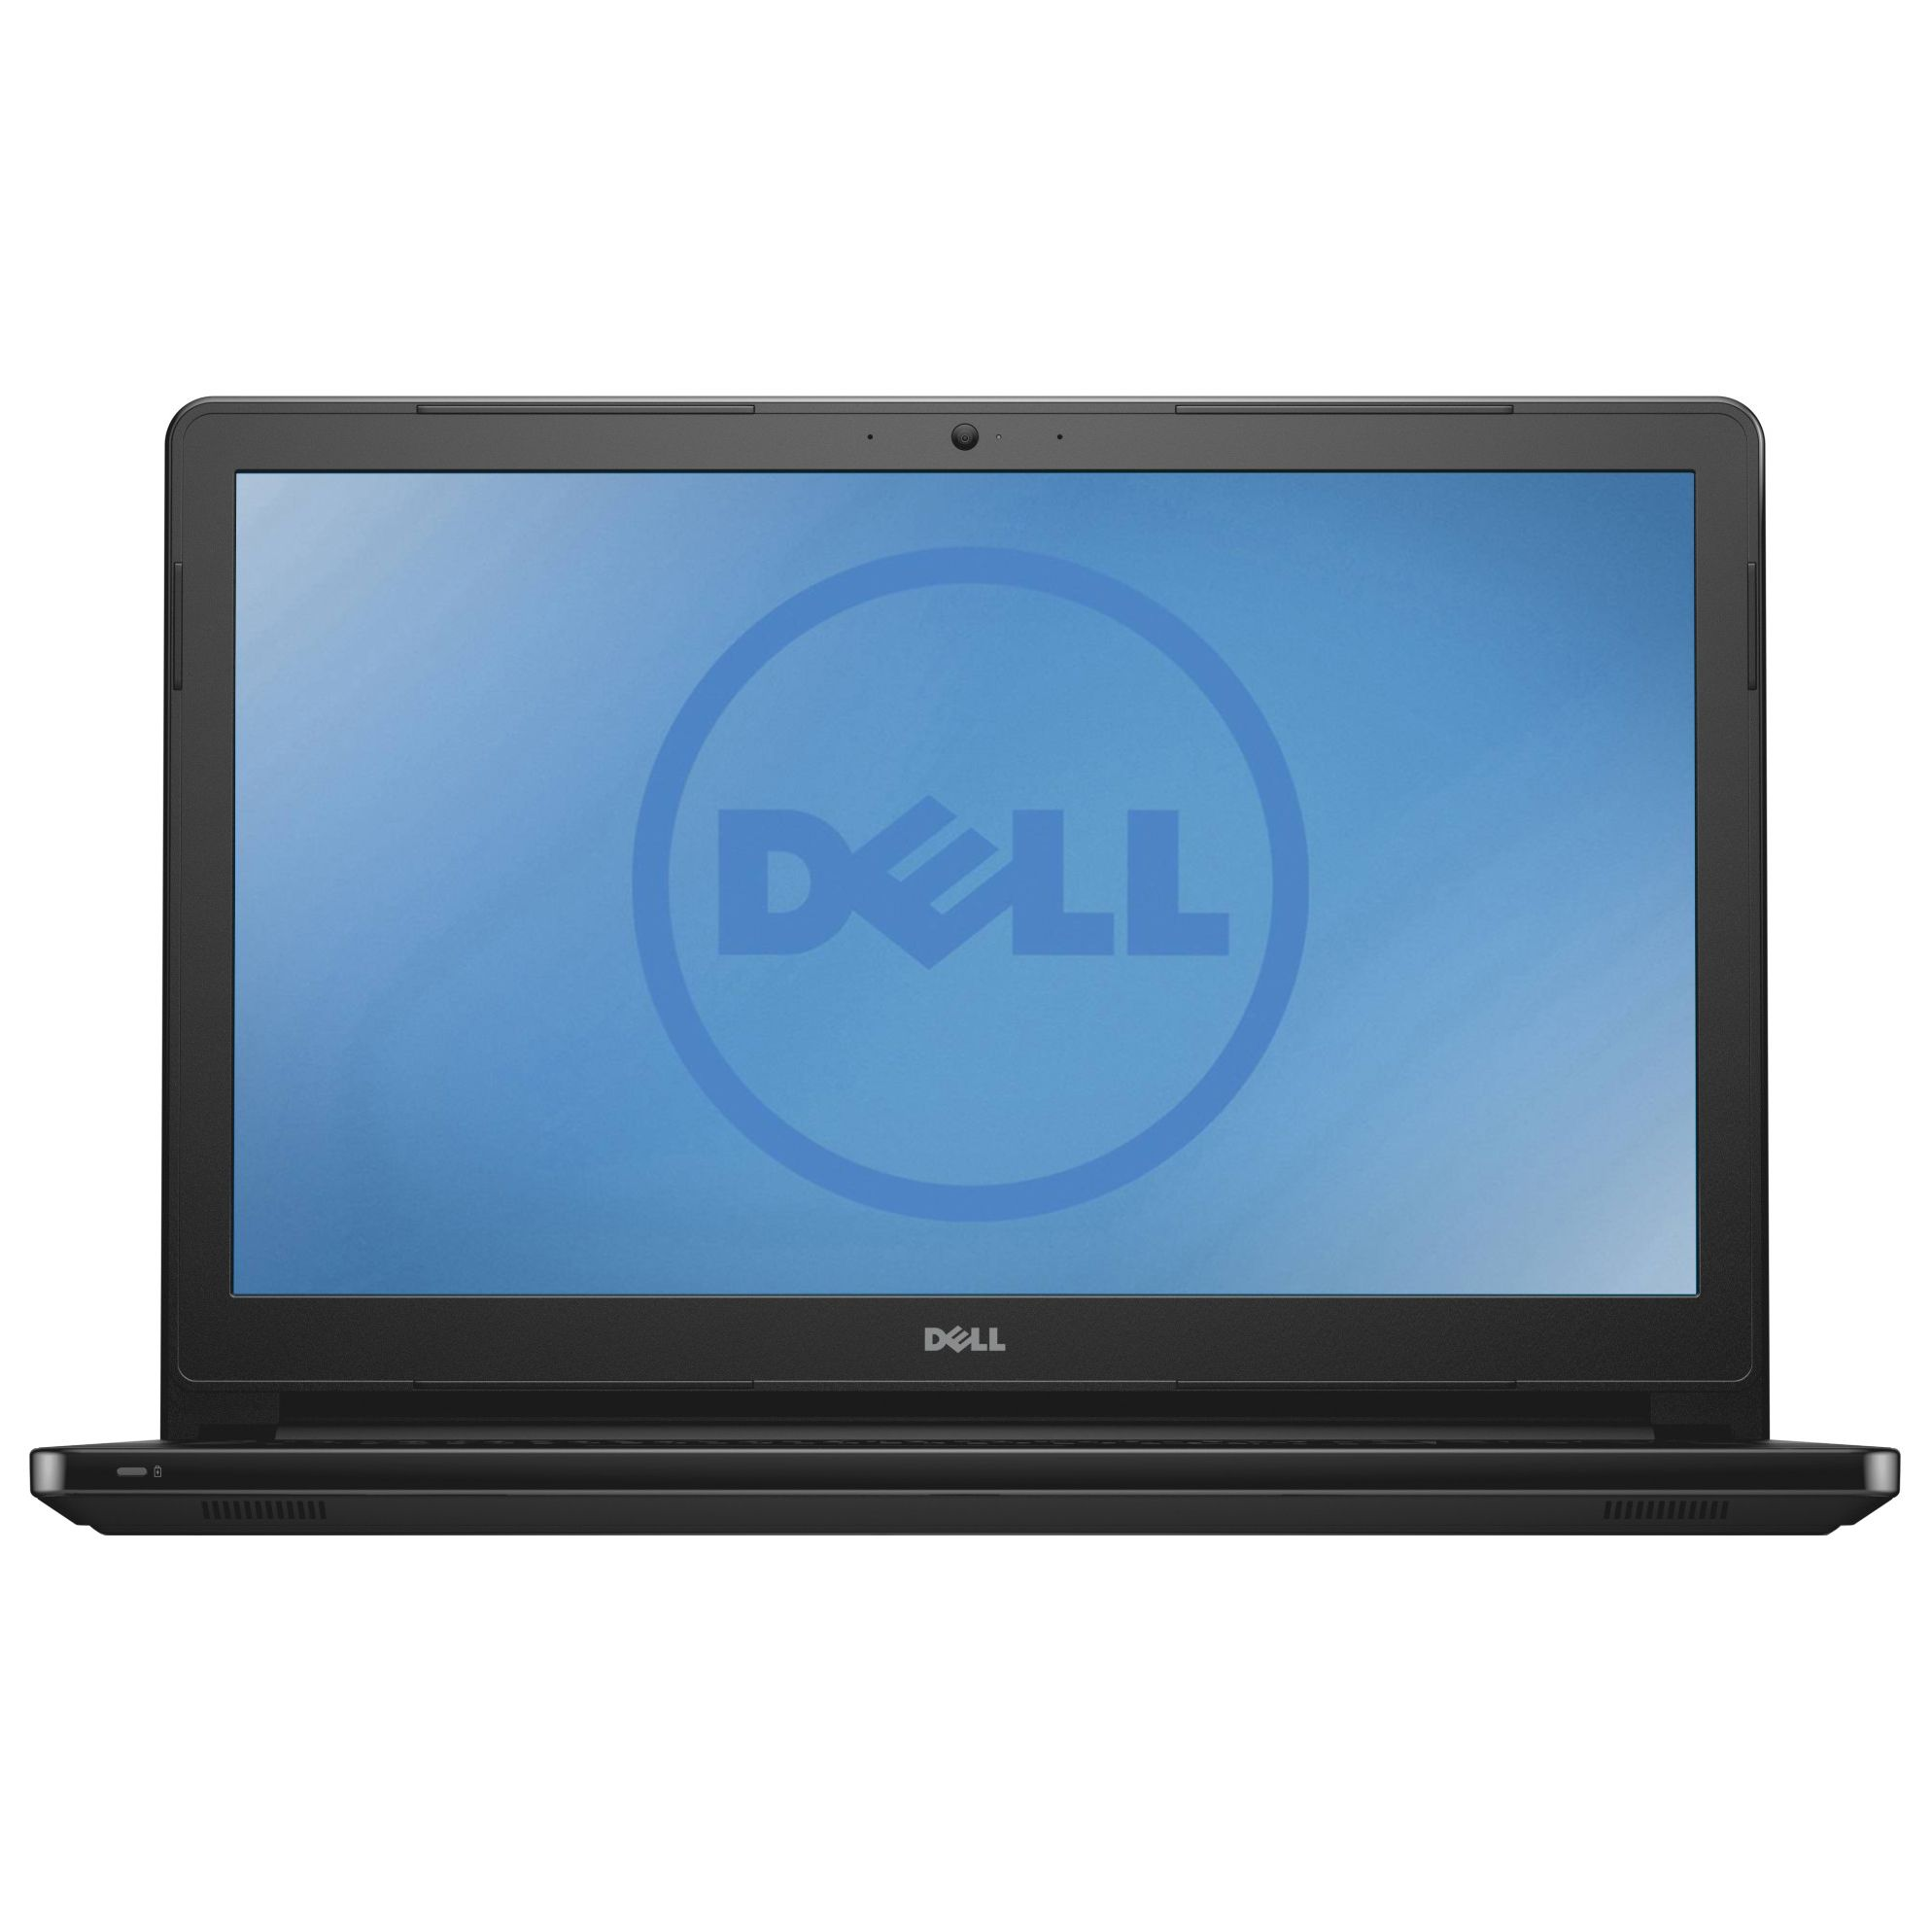 "LAPTOP DELL INSPIRON 5558 INTEL CORE I5-5200U 15.6"" LED DIN5558I545920MD"